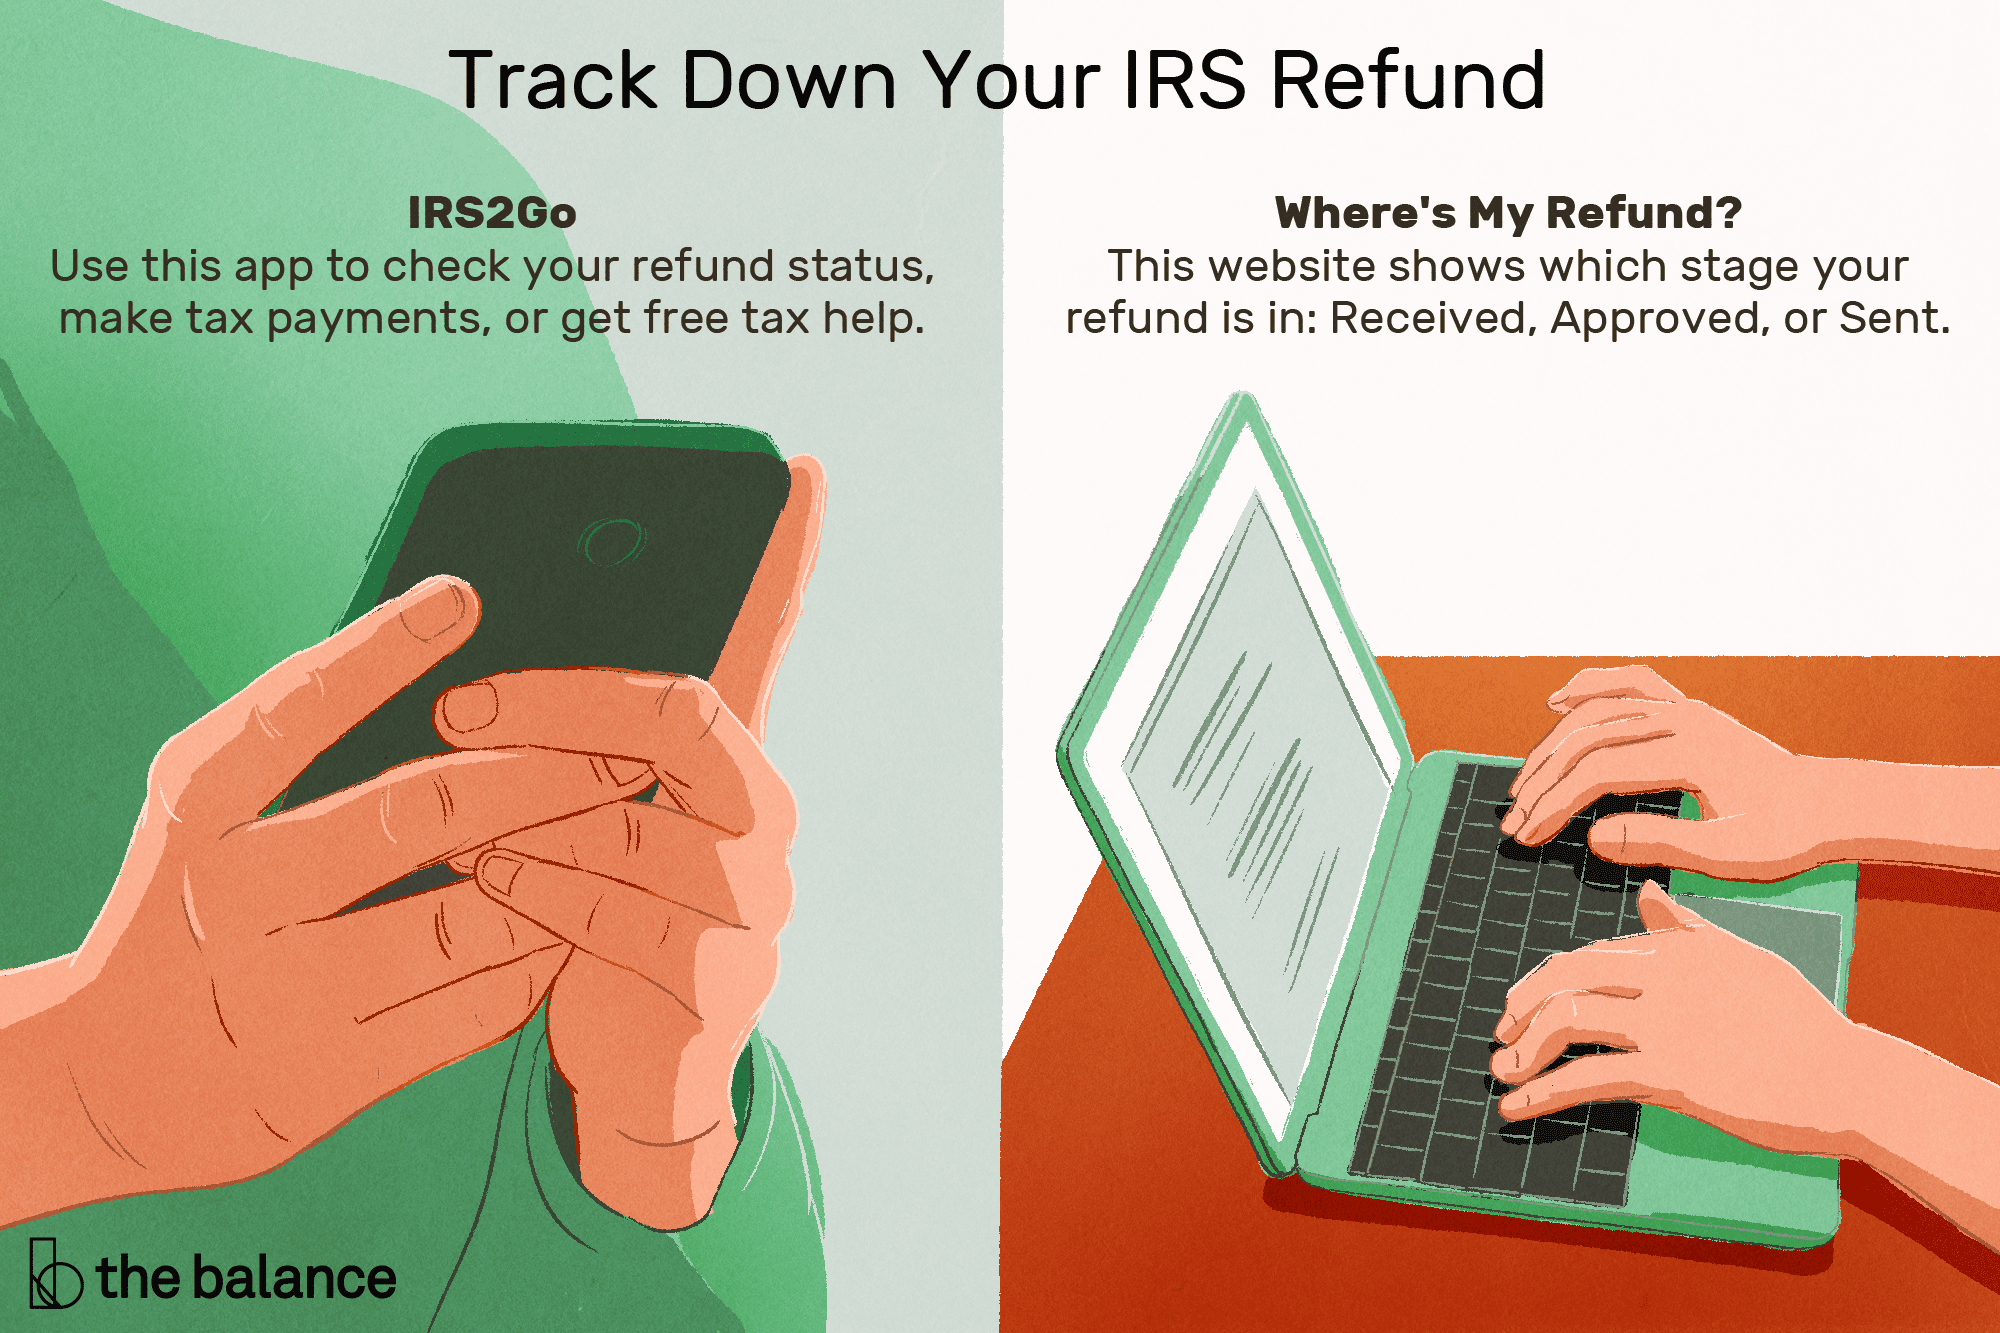 Trace Your Tax Refund Status Online with IRS gov